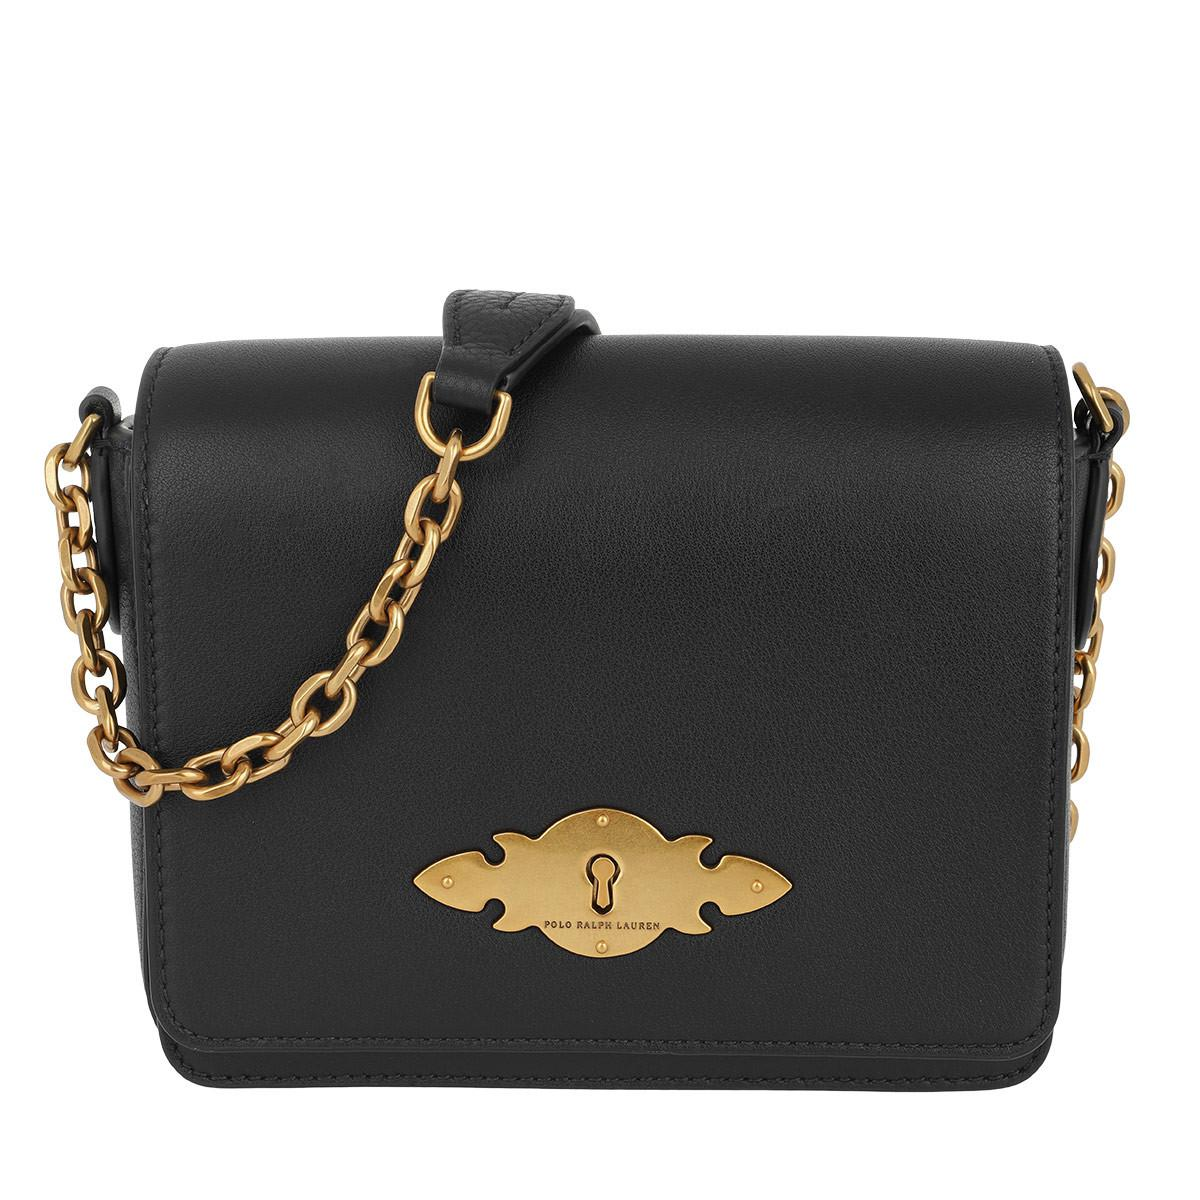 753b50aae91c Polo Ralph Lauren - Brooke Chain Crossbody Bag Small Black - Lyst. View  fullscreen